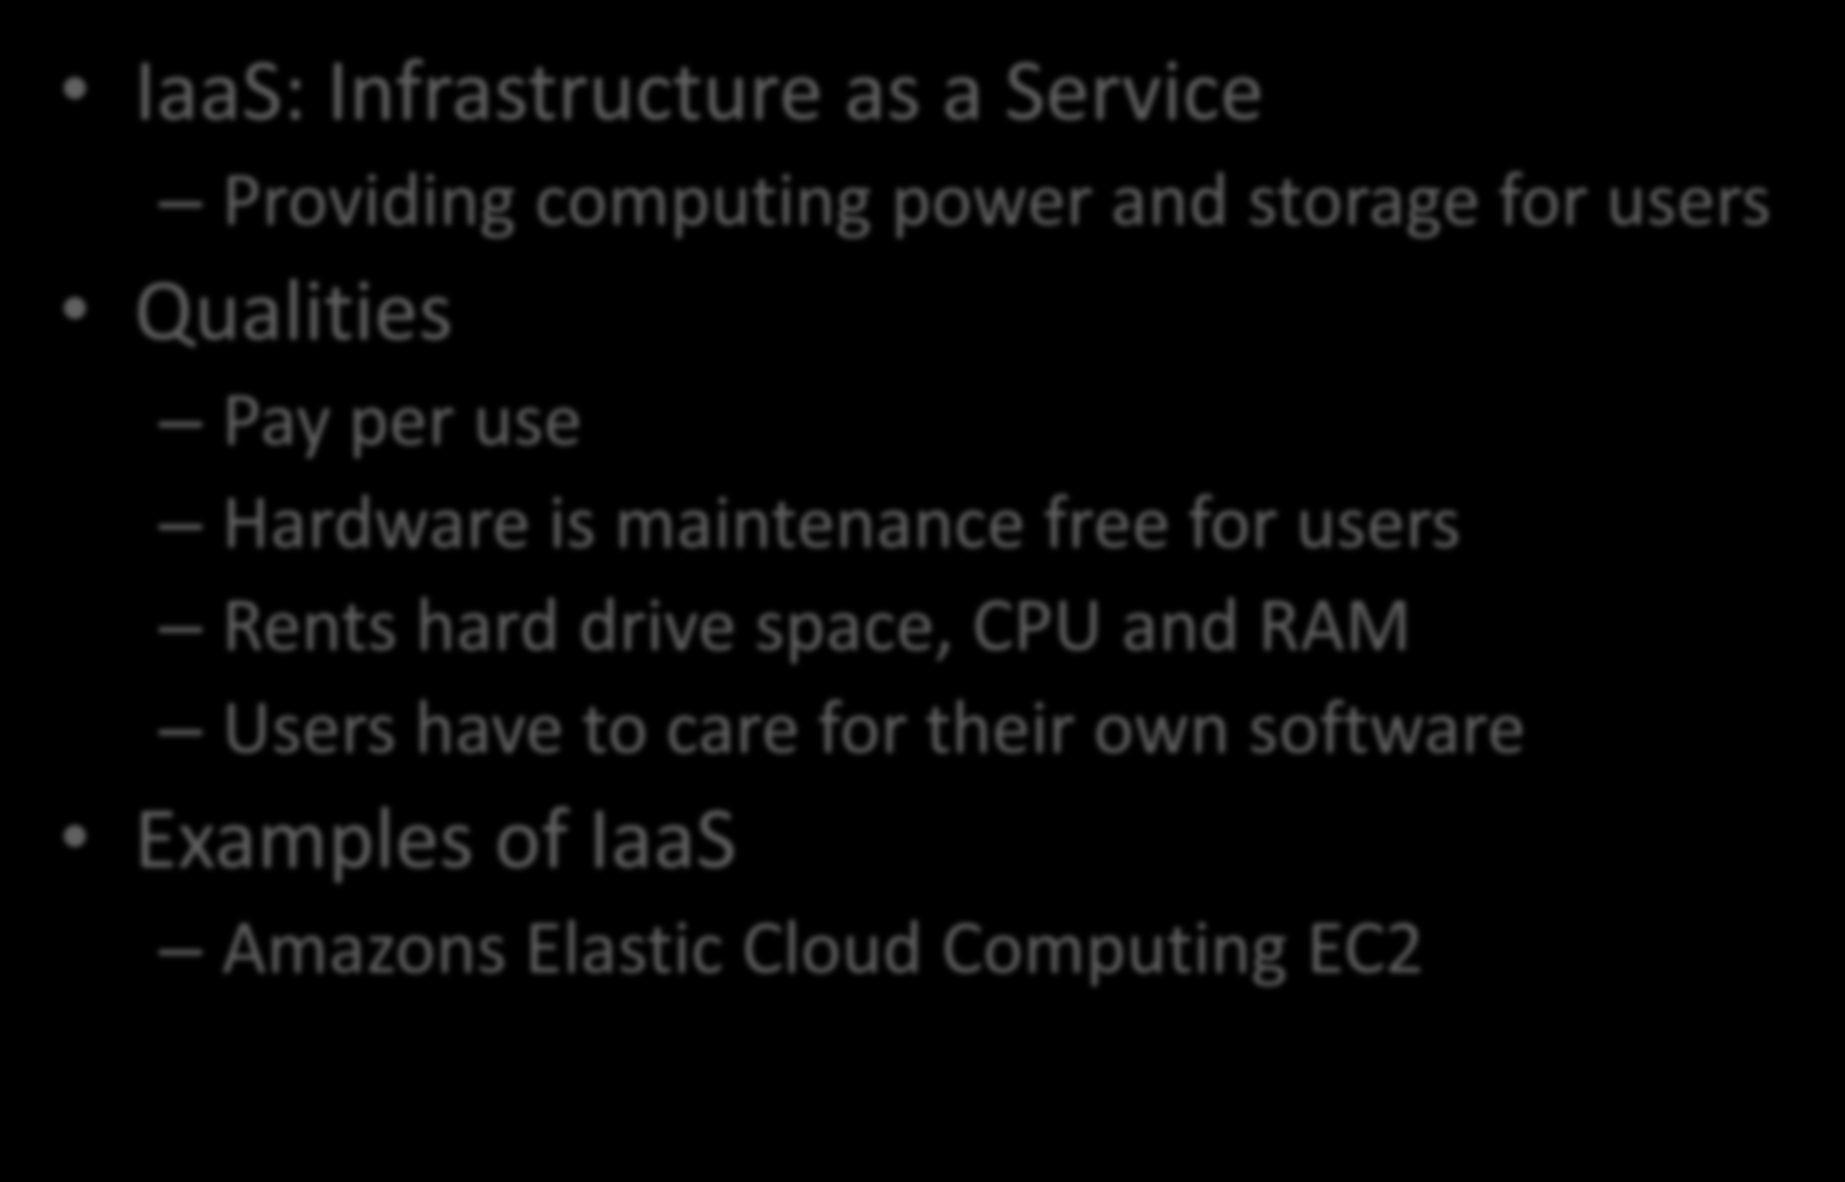 Types of Cloud Computing IaaS: Infrastructure as a Service Providing computing power and storage for users Qualities Pay per use Hardware is